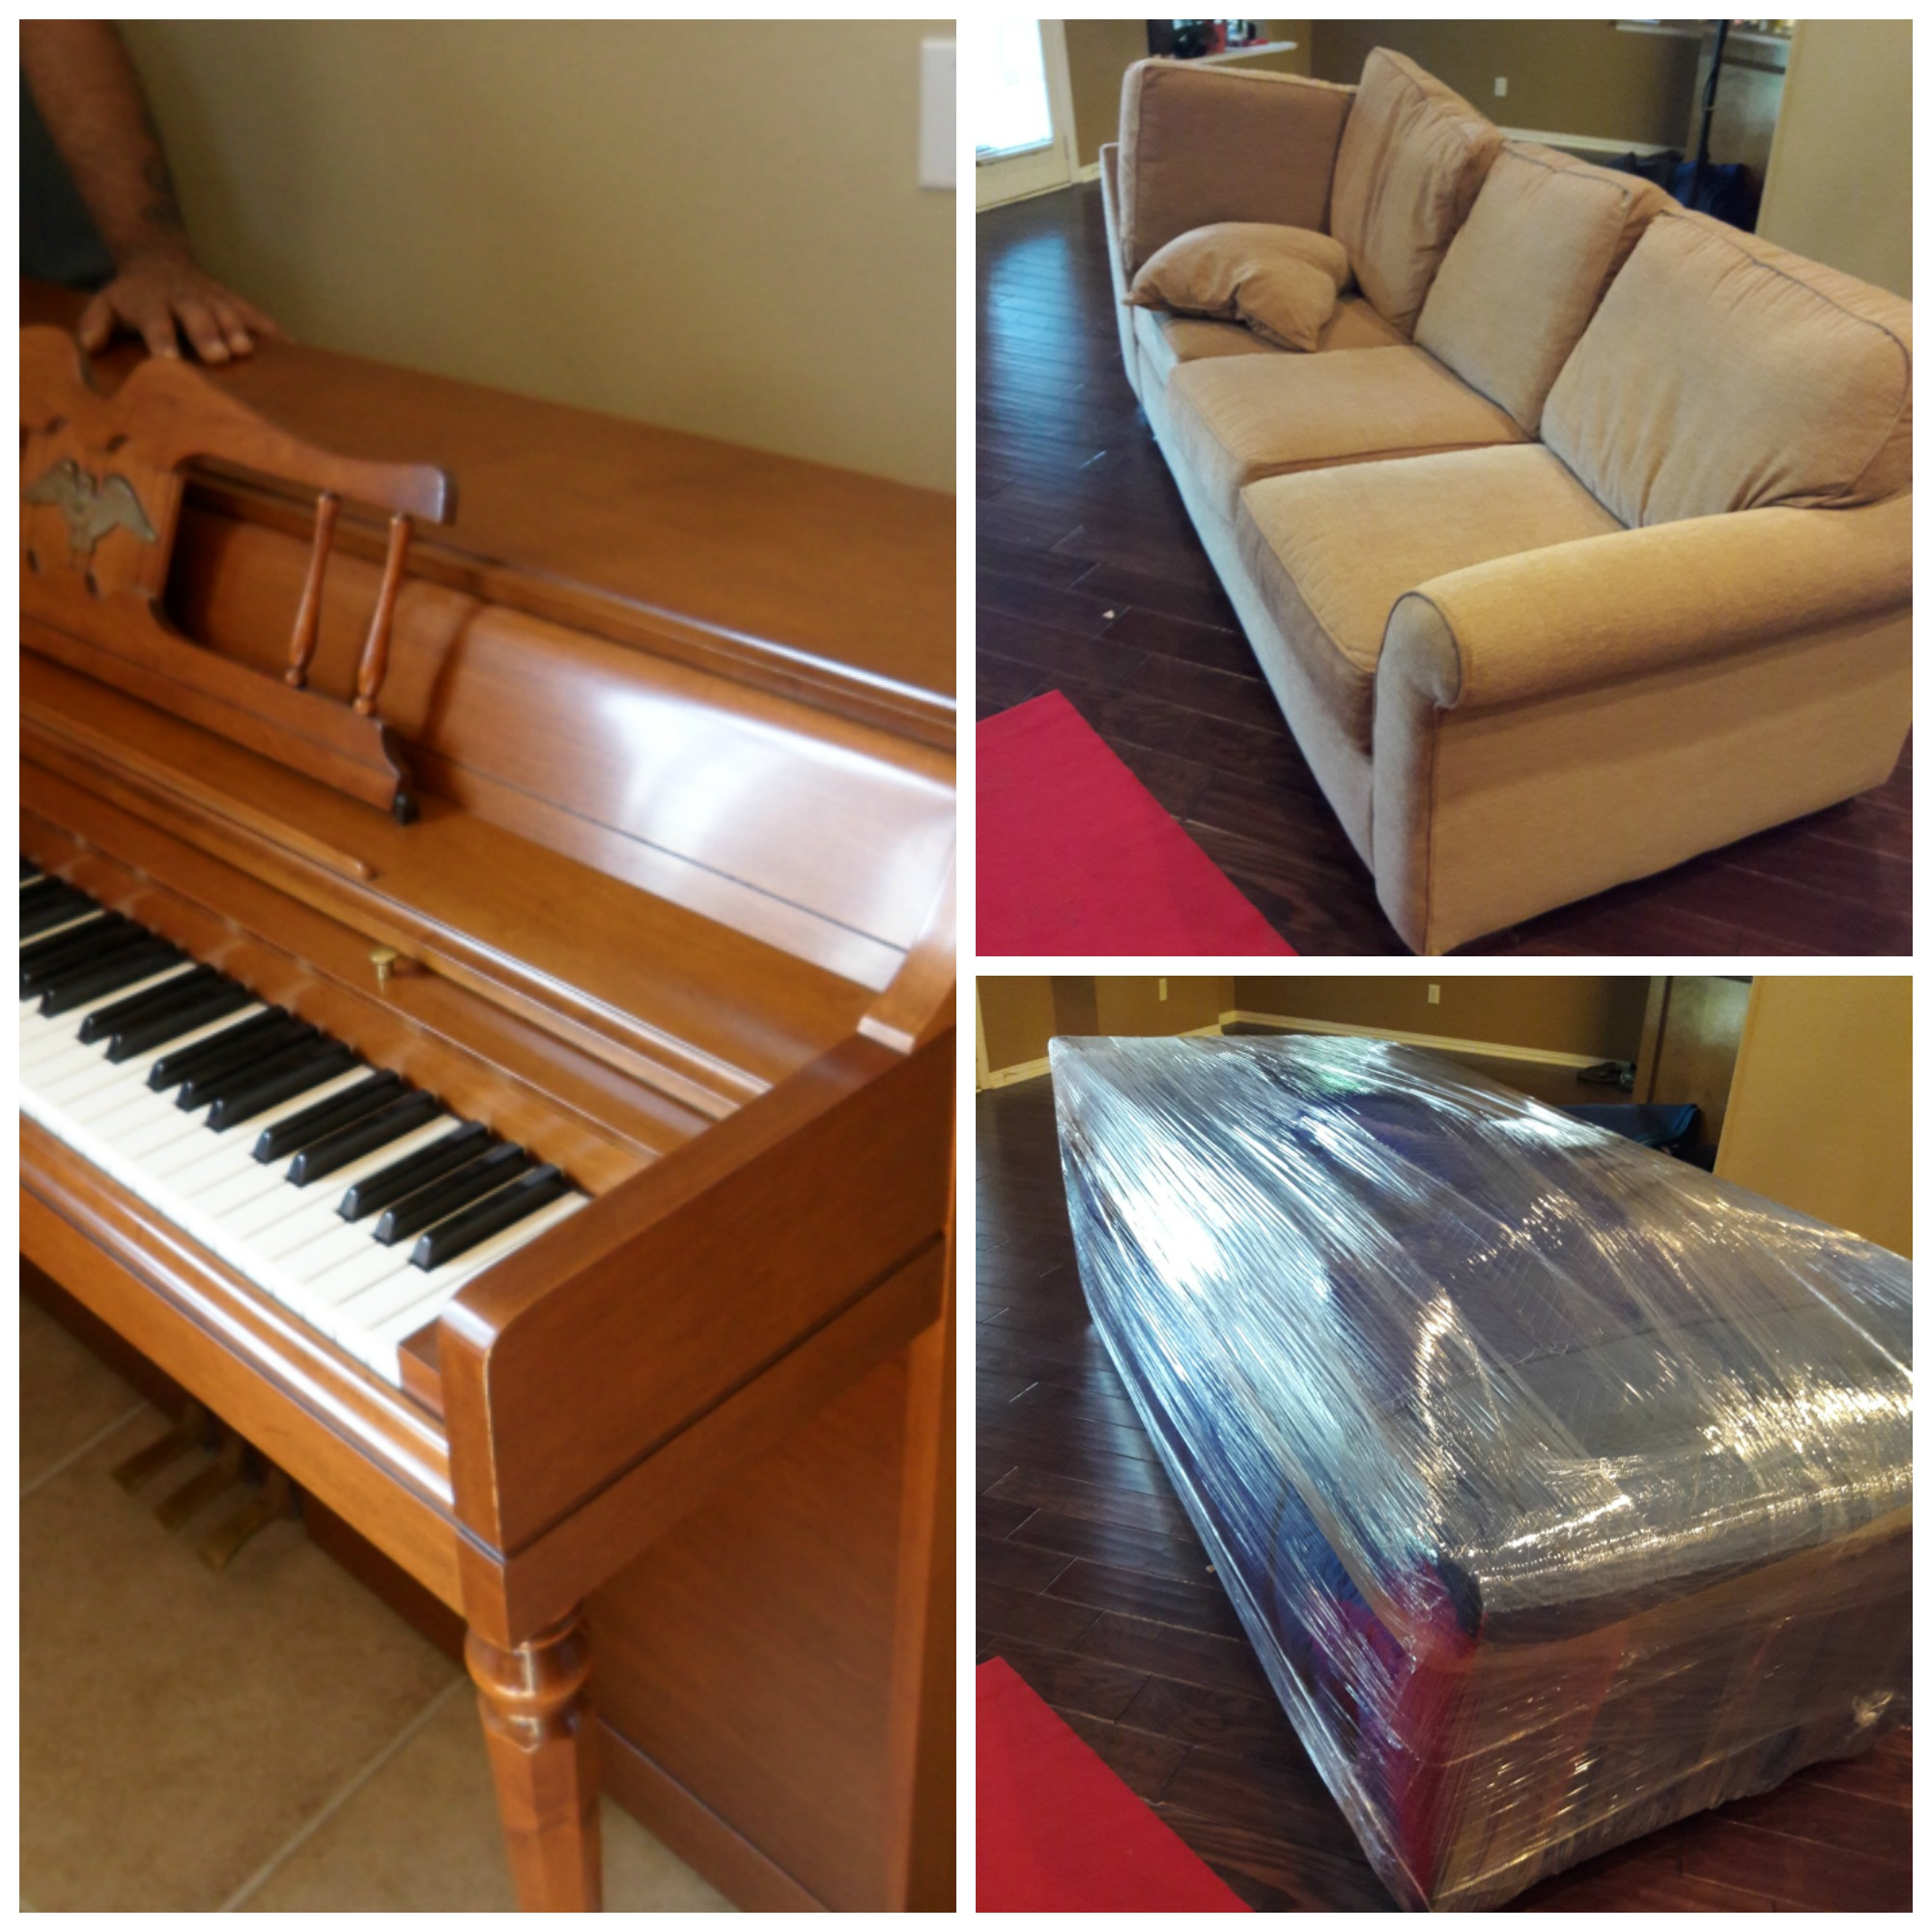 Tremendous Furniture Movers In Frisco Tx Rescue Movers Download Free Architecture Designs Grimeyleaguecom